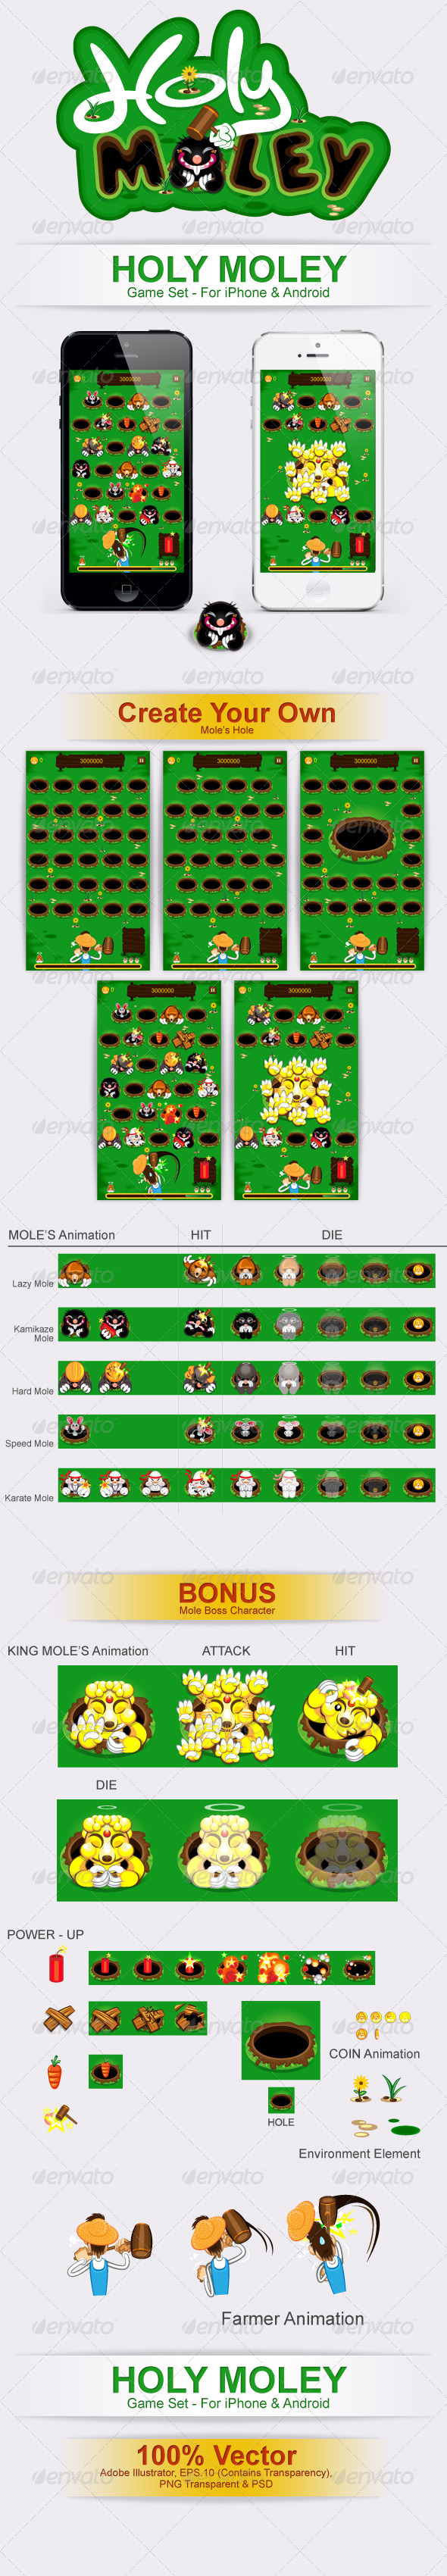 Holy Moley Game Pack Bundle Set - Sprites Game Assets